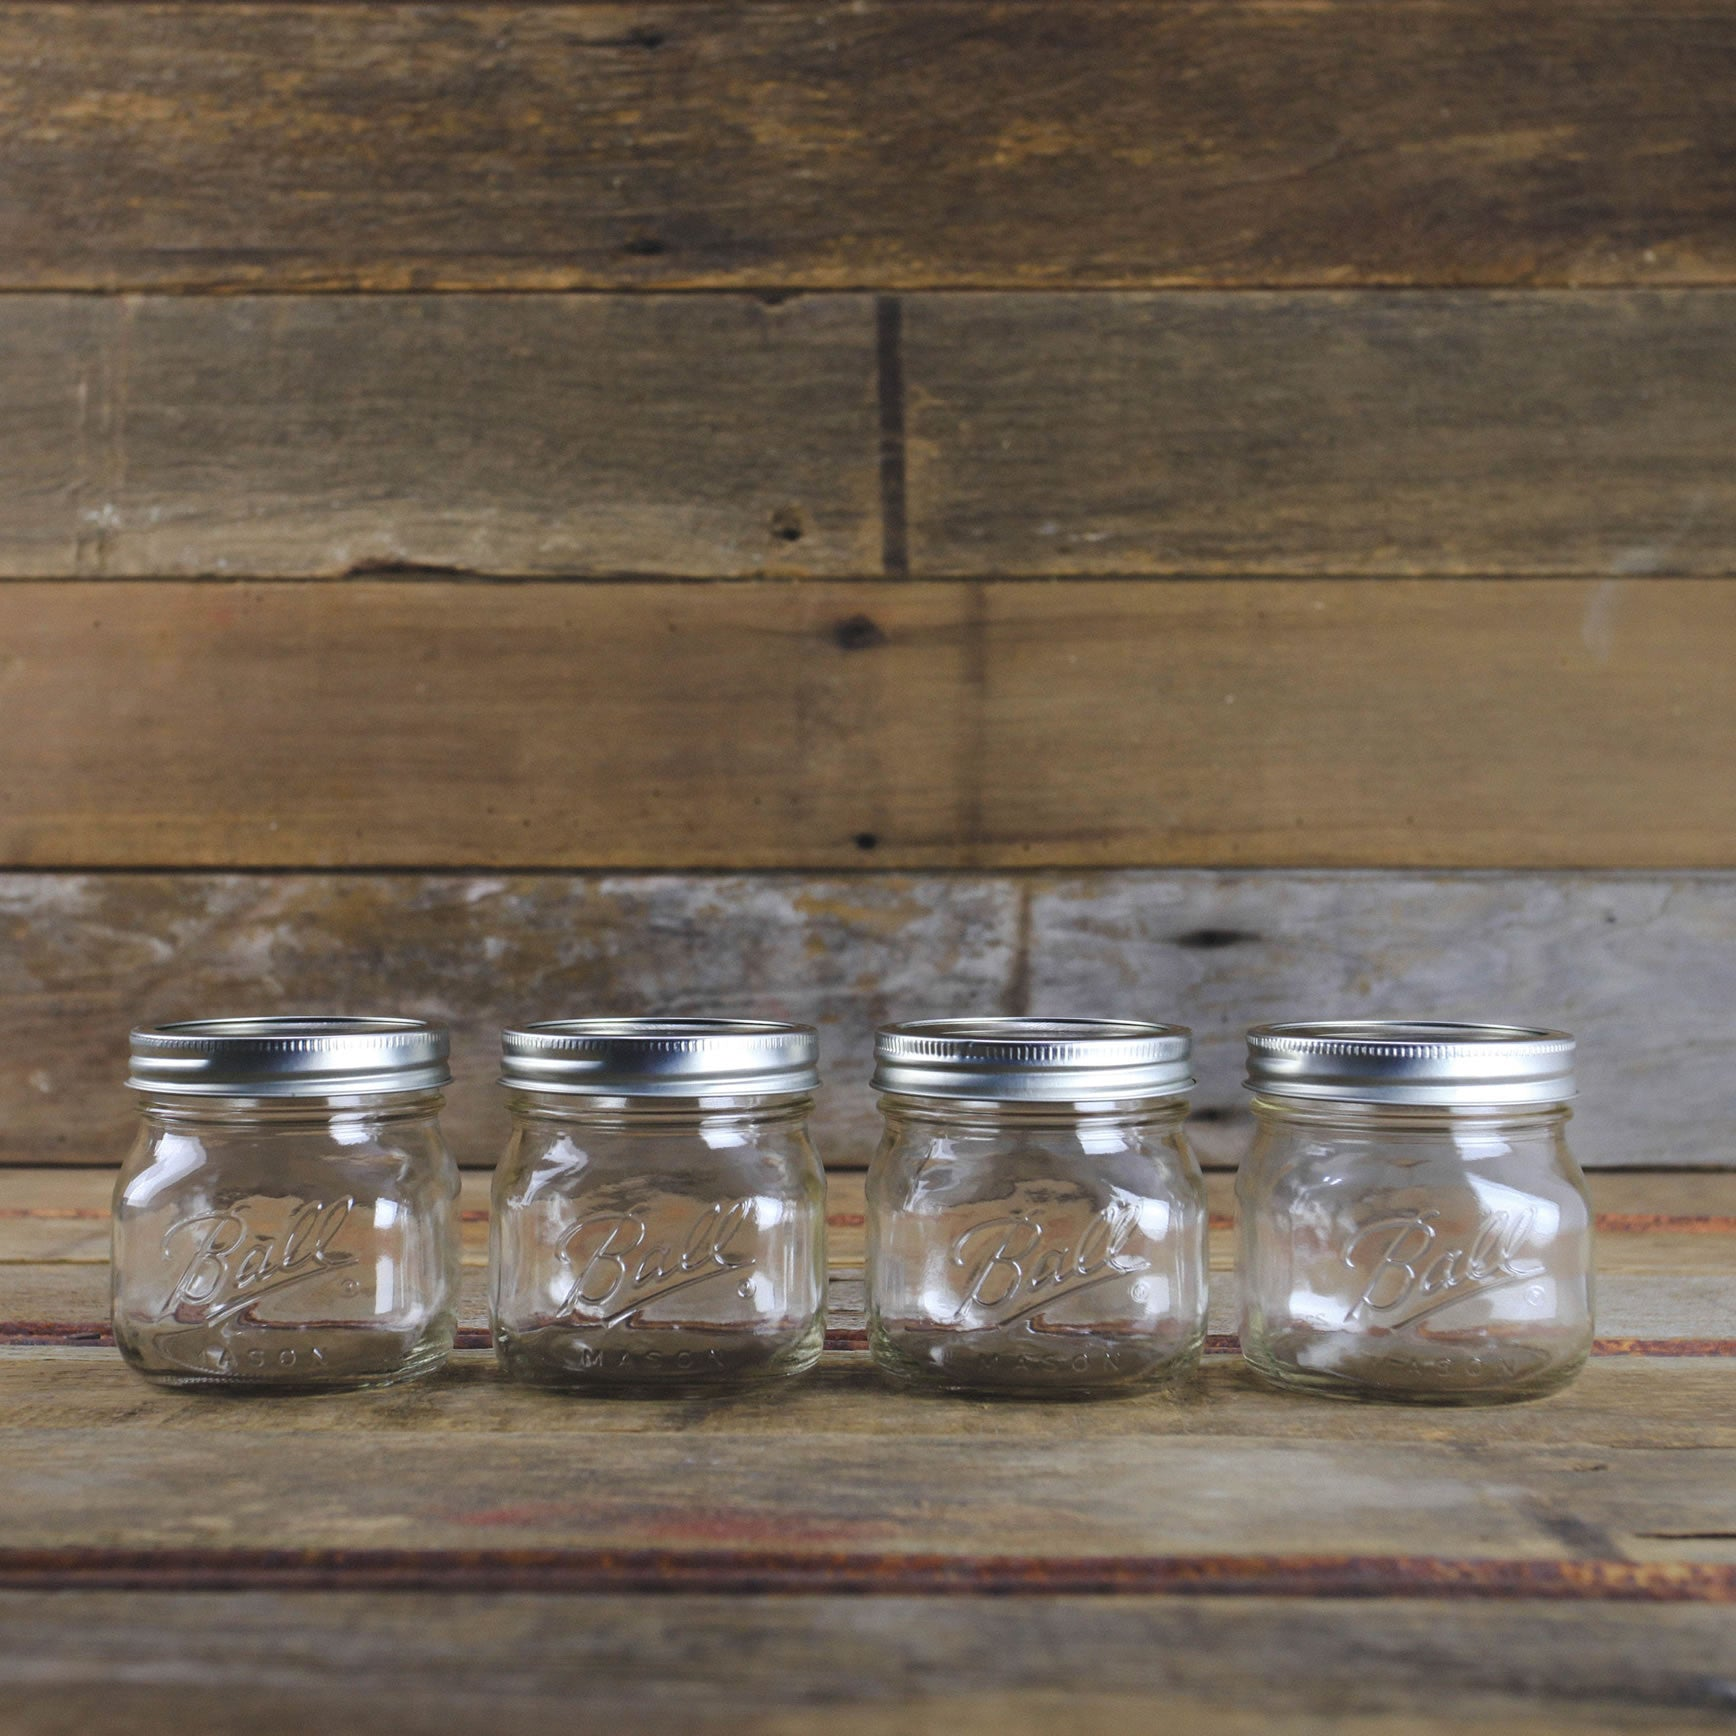 6 Unique Homemade Canning Jar Gift Ideas Mountain Feed Farm Supply